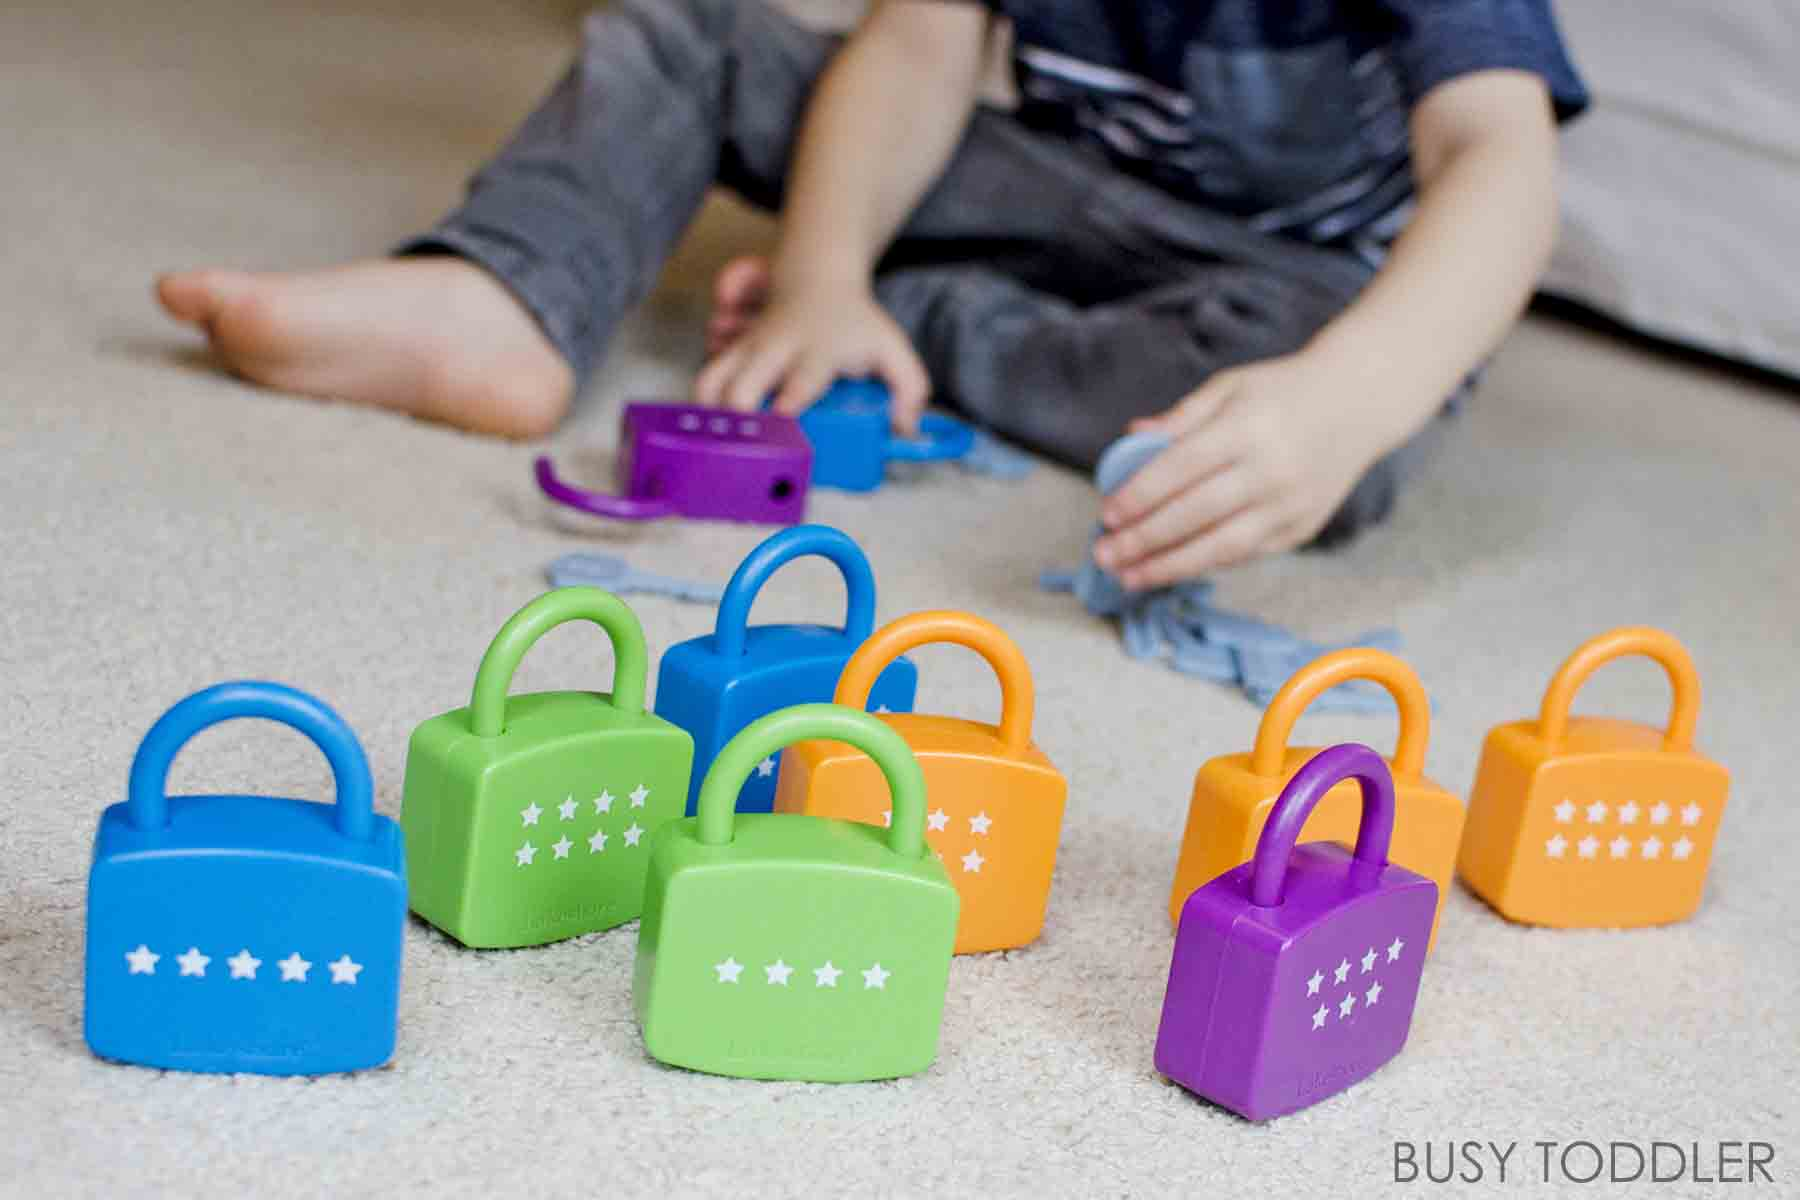 TOYS THAT TEACH: Check out these three awesome toys to learn with! Playing with numbers is a great way to interact with math. Perfect toys for preschoolers from Lakeshore Learning. #ad